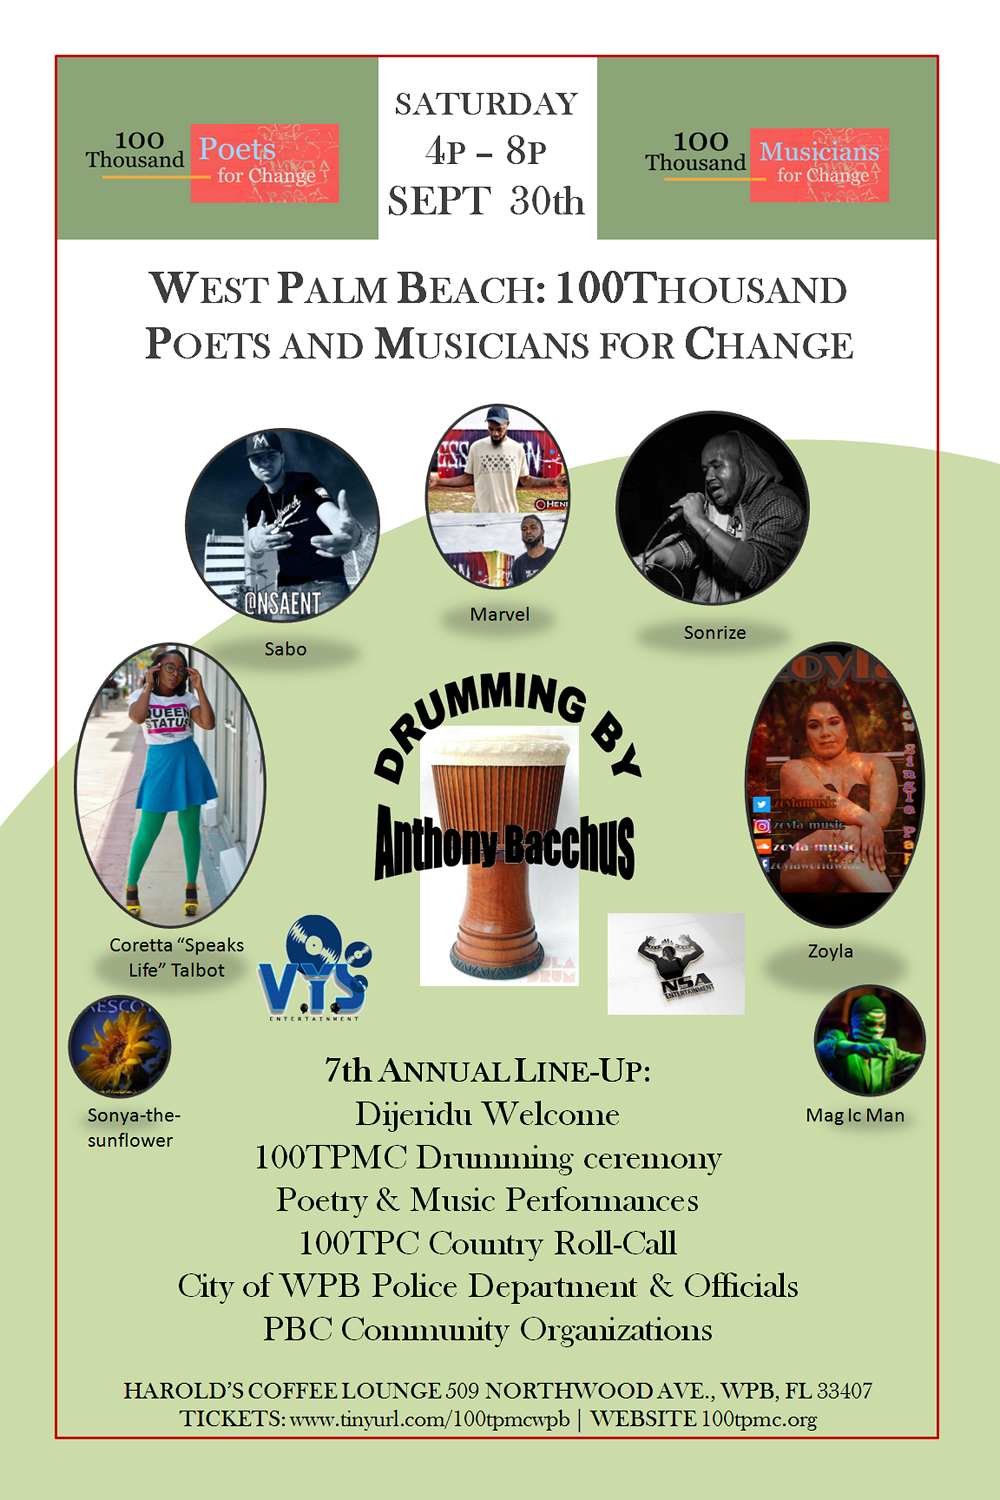 WEST PALM BEACH 100TPMC SEPT 30th 4p-8p